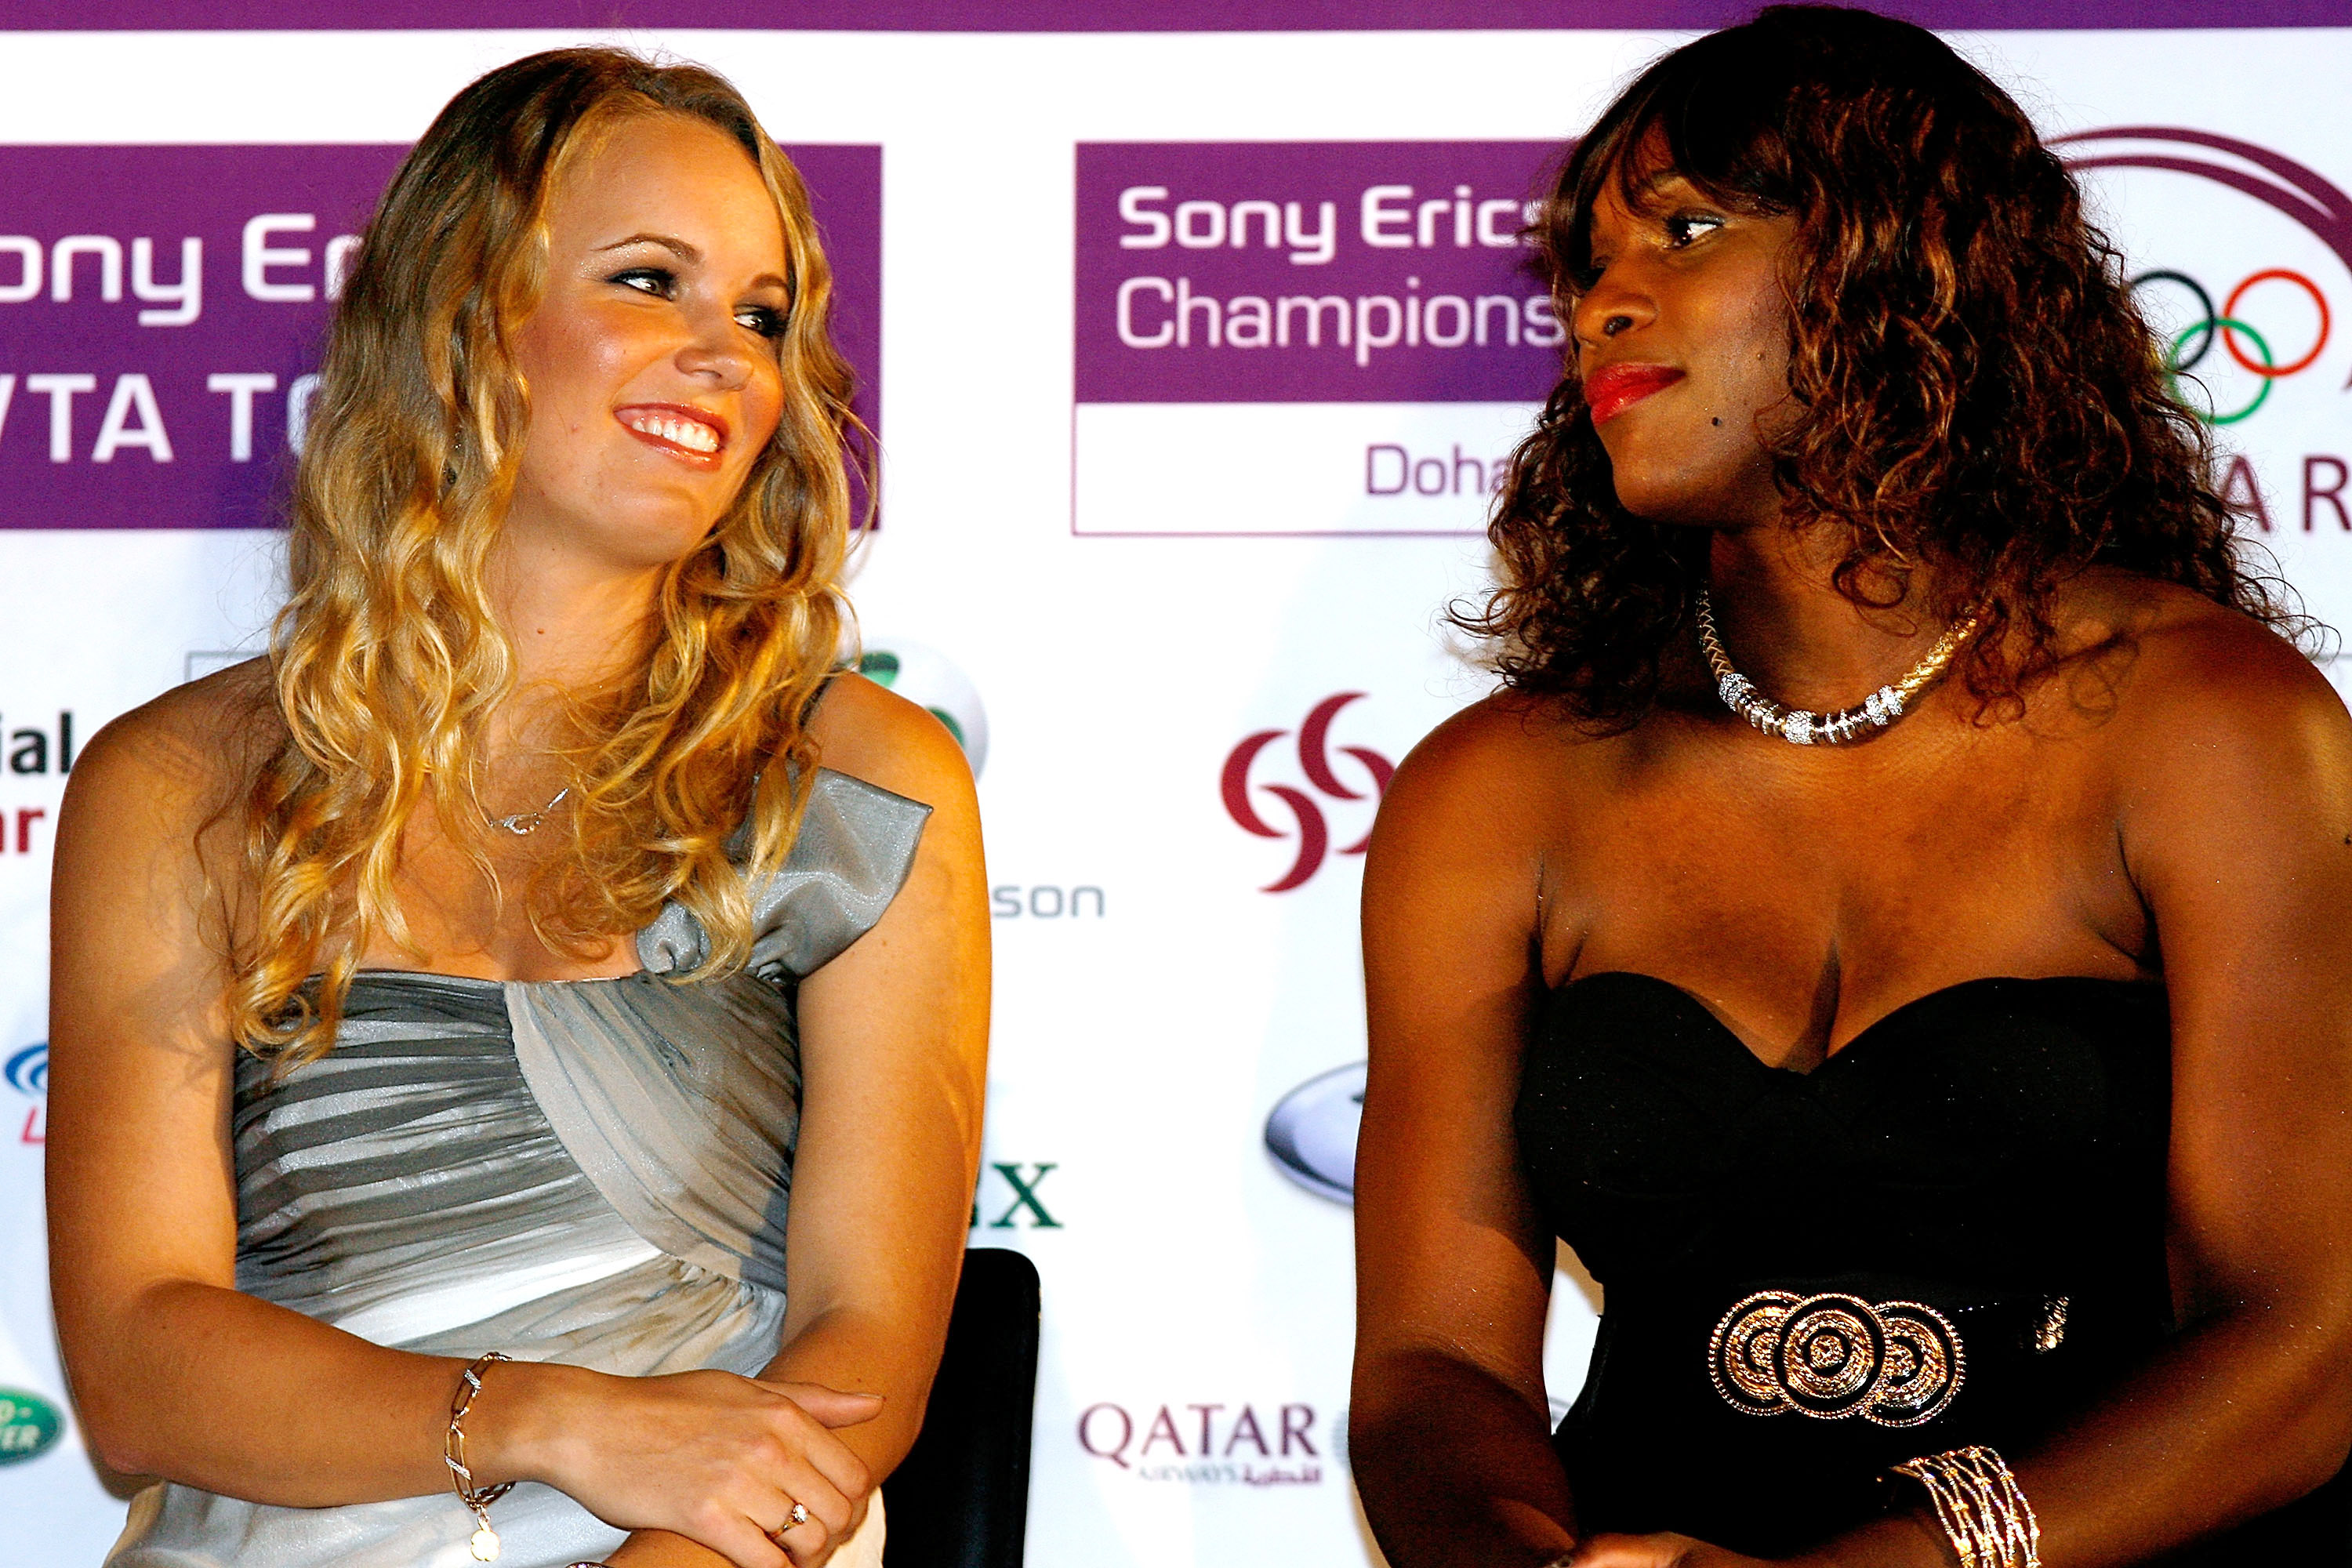 DOHA, QATAR - OCTOBER 25: Caroline Wozniacki of Denmark and Serena Williams of the United States talk during the draw ceremony for the Sony Ericsson WTA Championships at the Museum of Islamic Art on October 25, 2009 in Doha, Qatar. The Championships willl